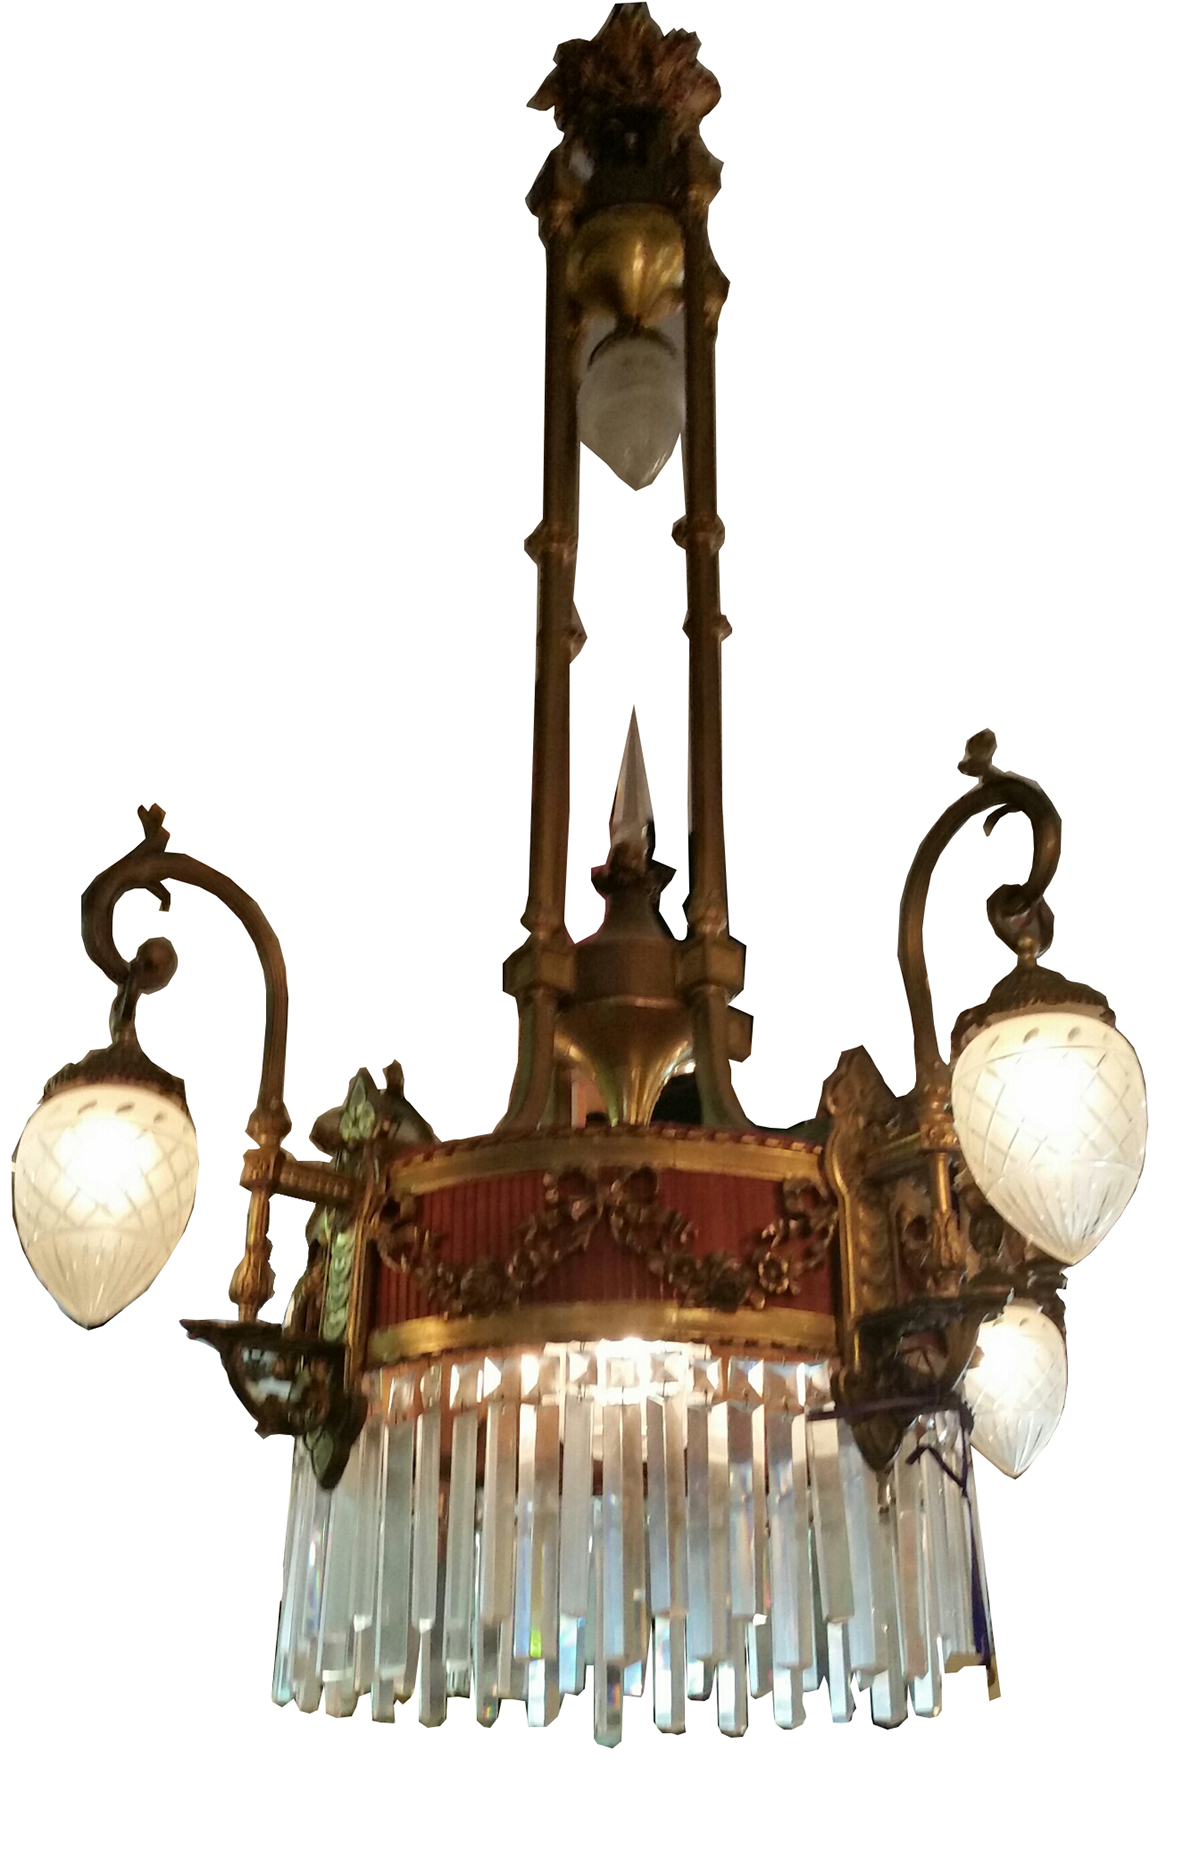 Antique Brass Chandelier With Cut Crystal Bowls Modernism